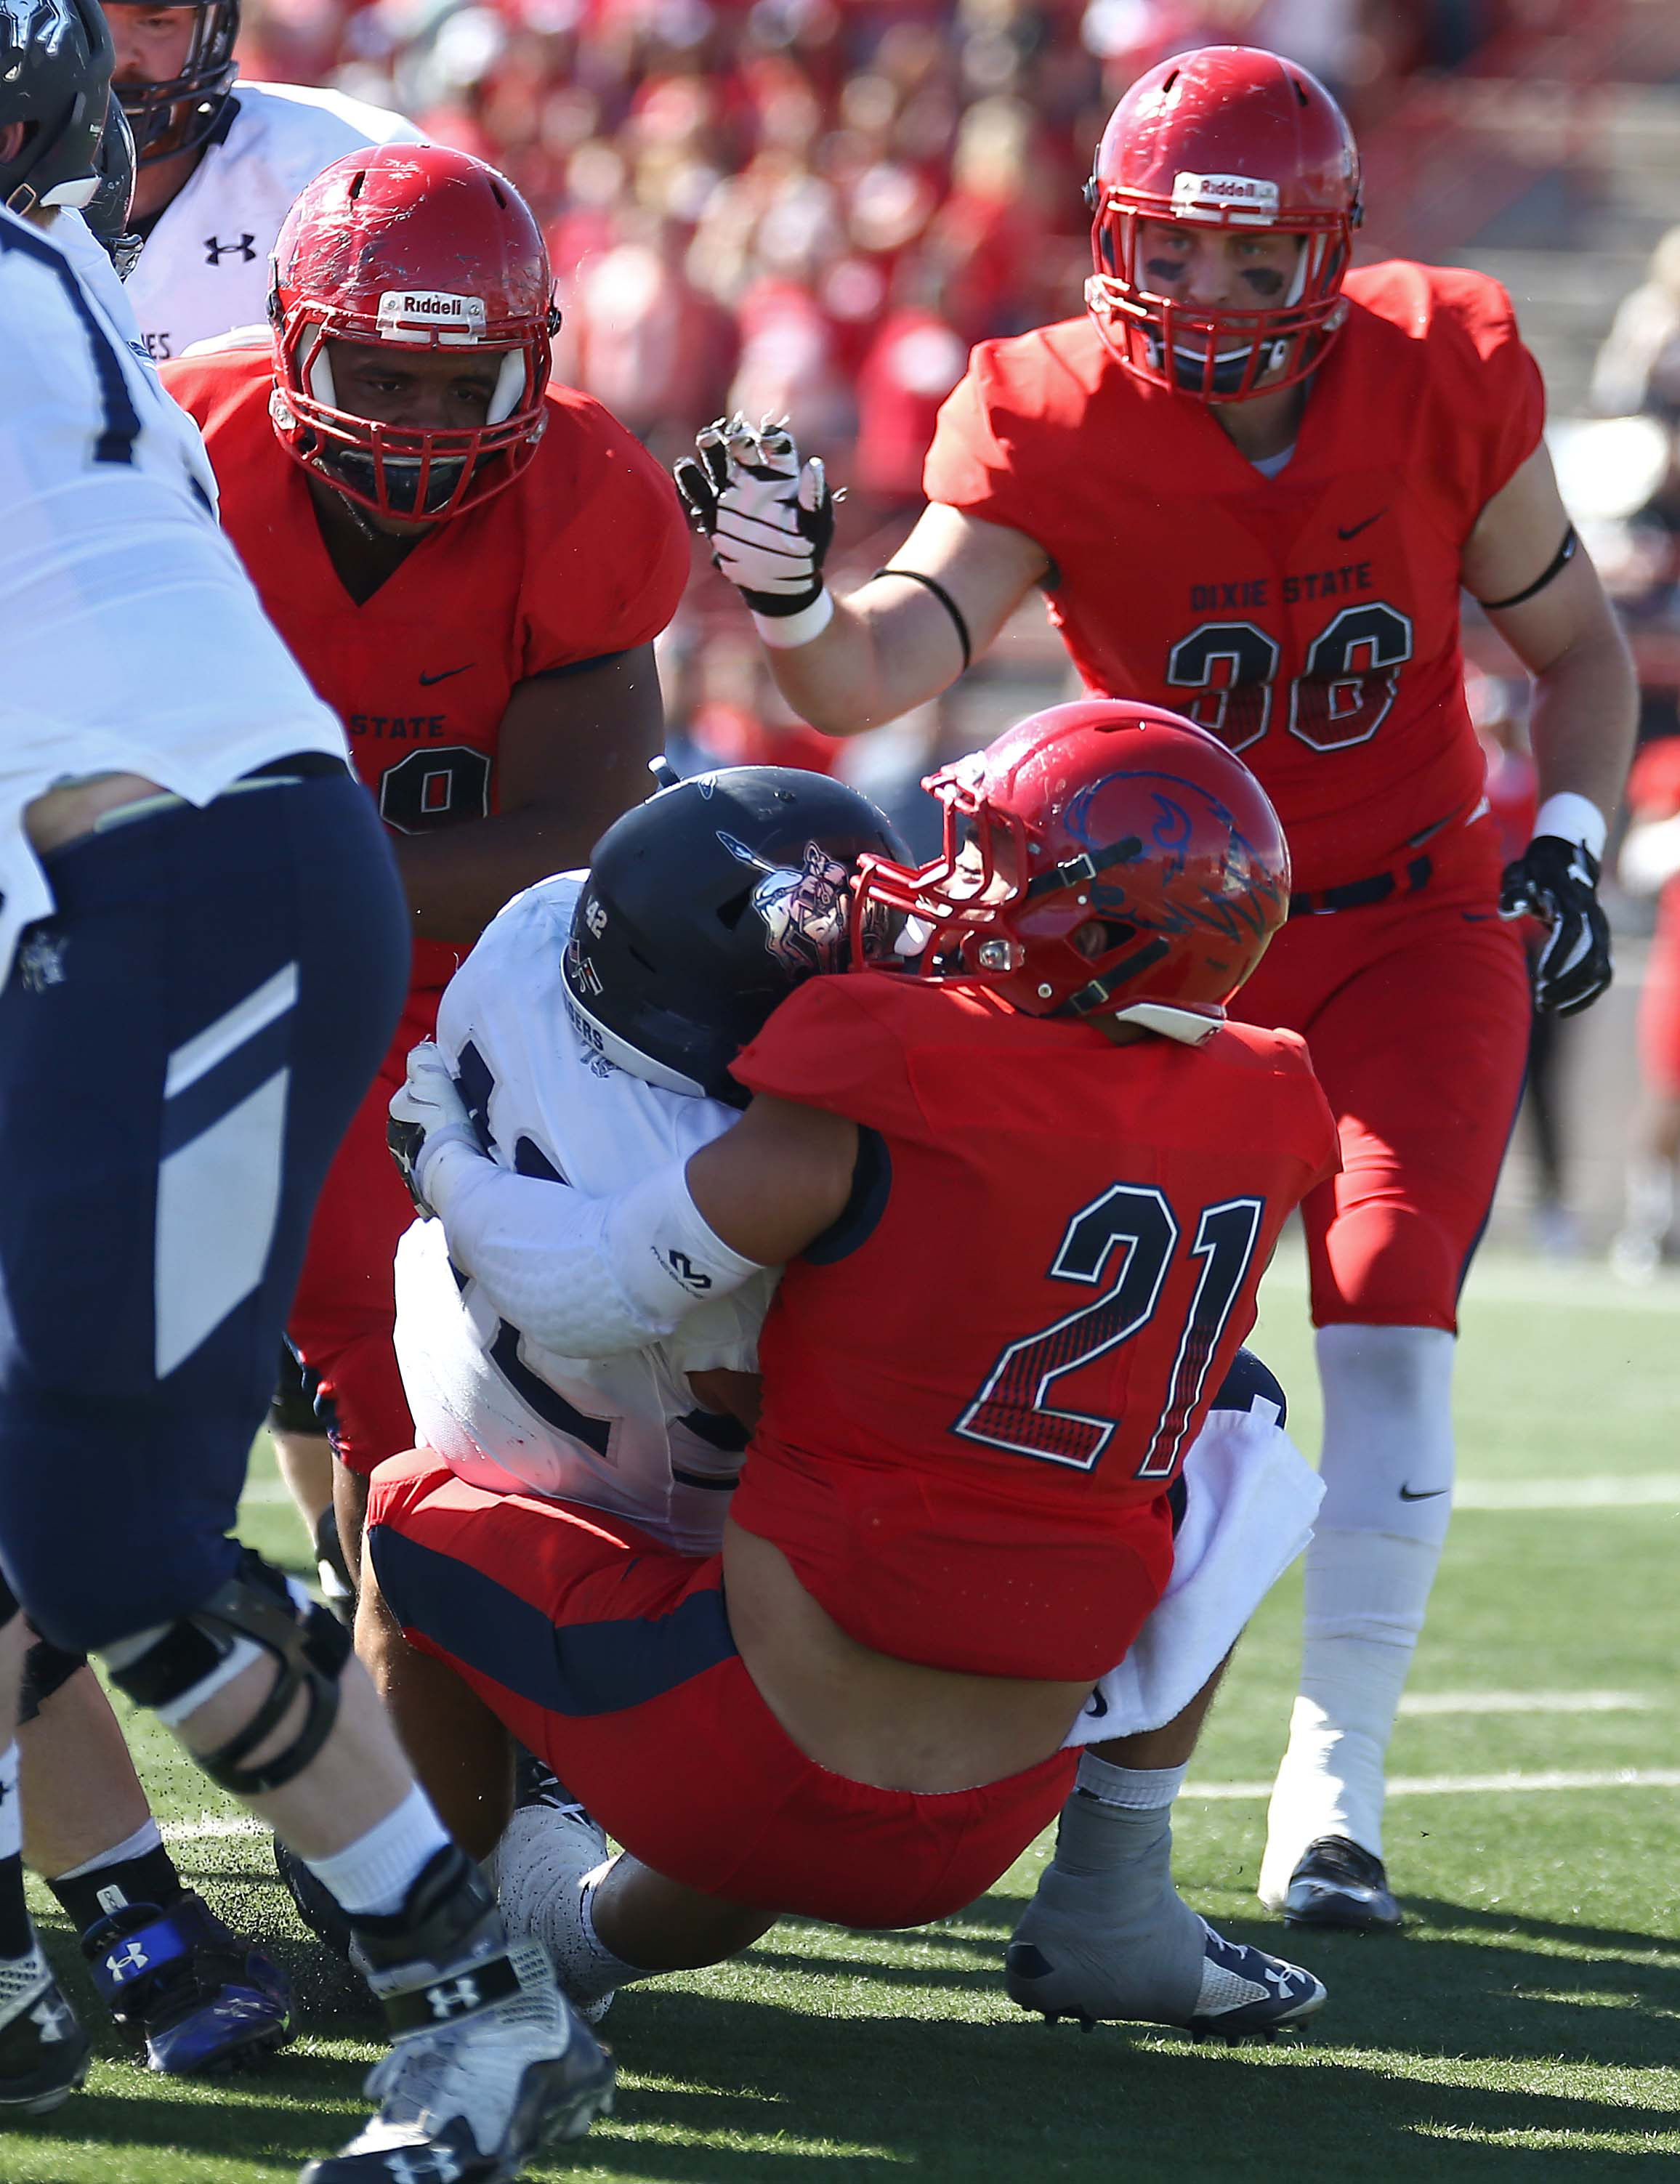 Diggers Bury Dixie State Under Avalanche Of Offense Cedar City News